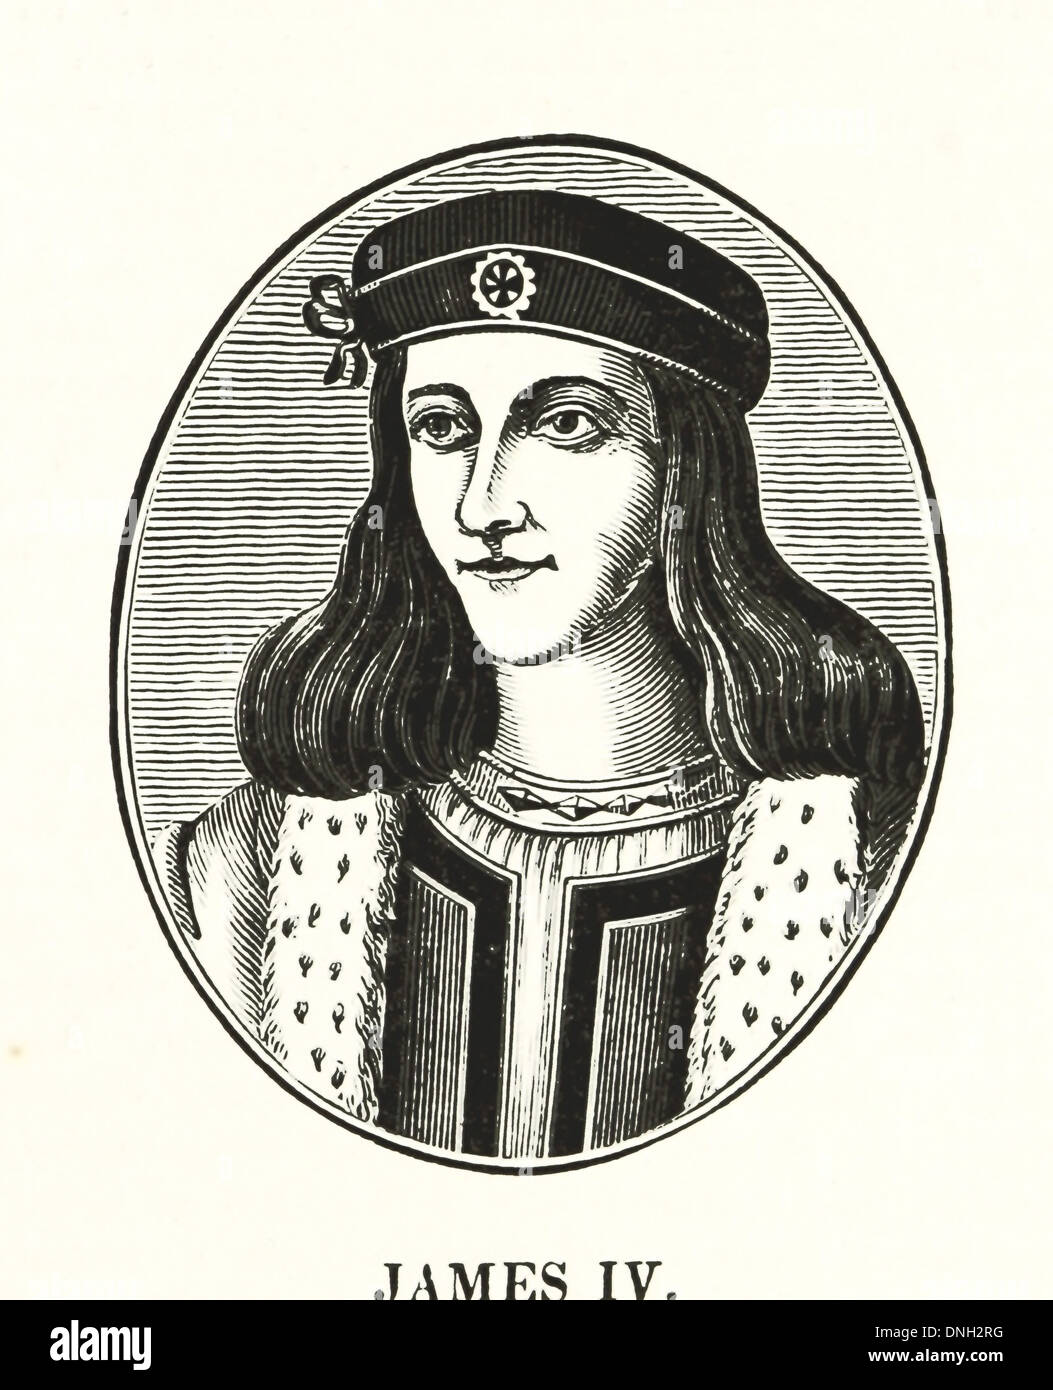 James IV (17 March 1473 – 9 September 1513) - King of Scots from 11 June  1488 to his death